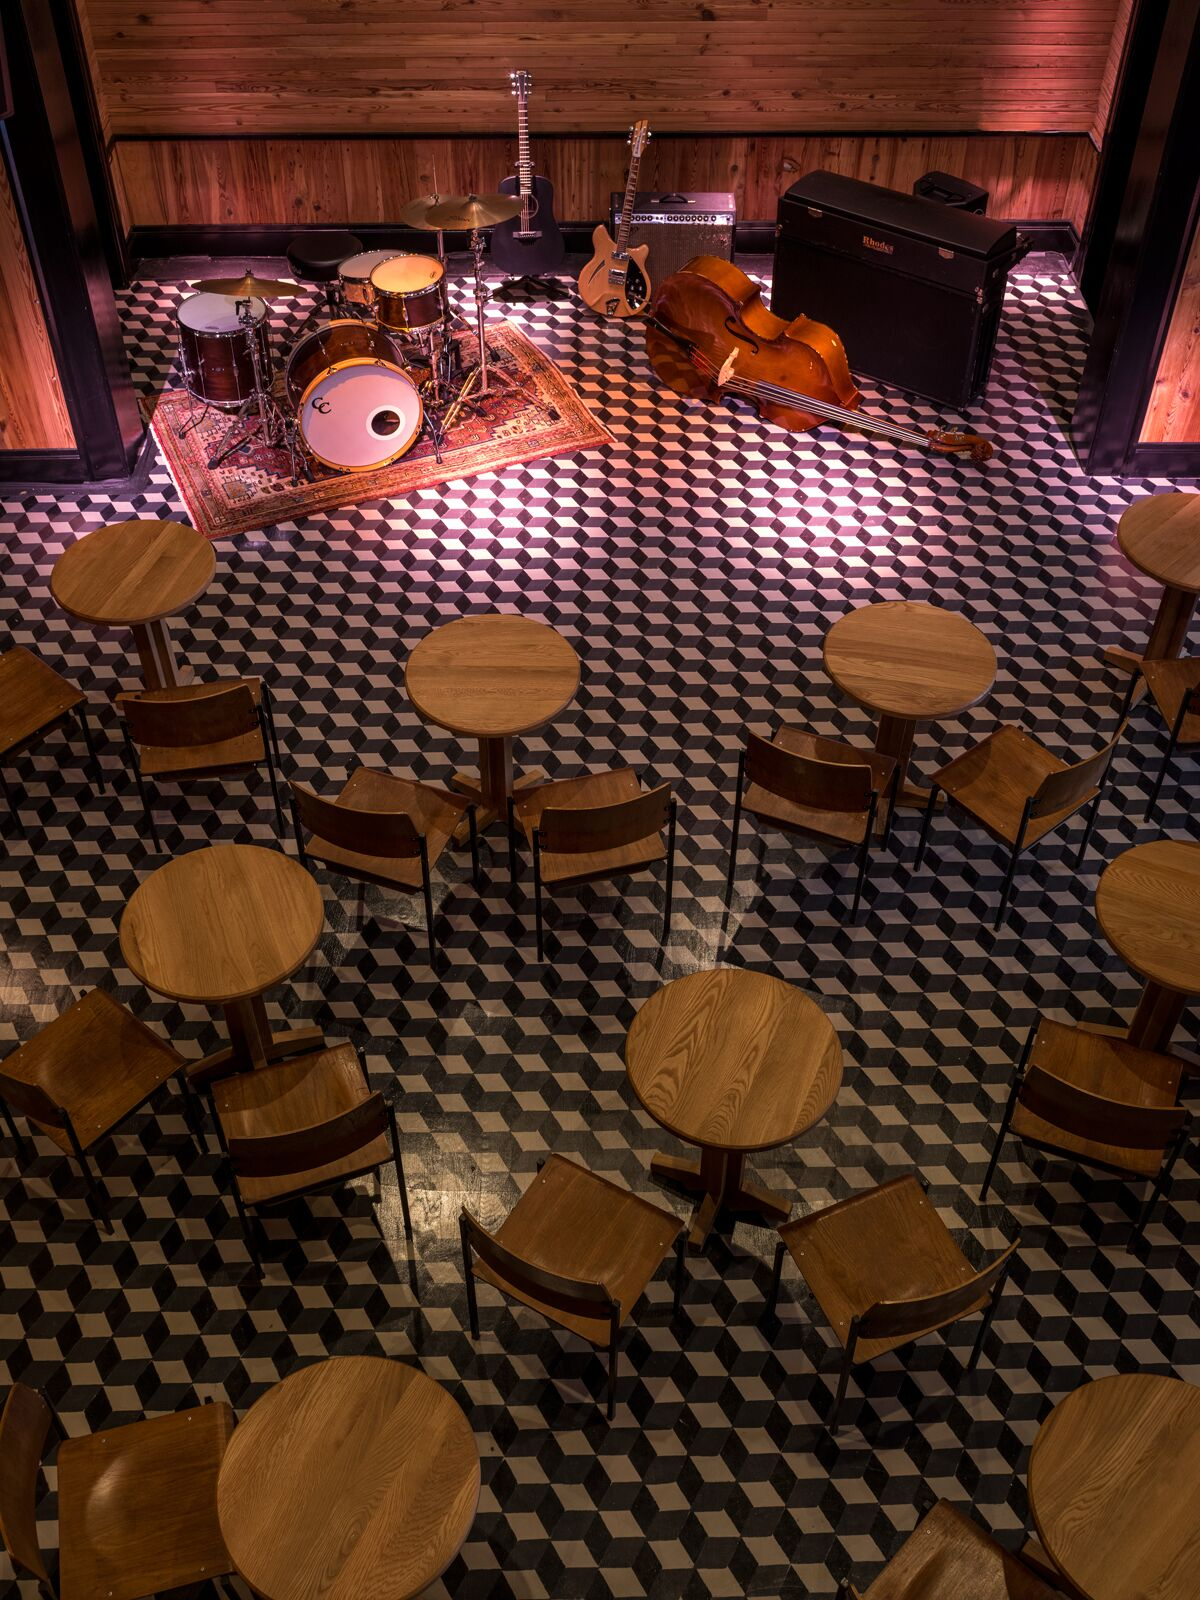 The Three Keys music venue at Ace Hotel. (Photo: Fran Parente)